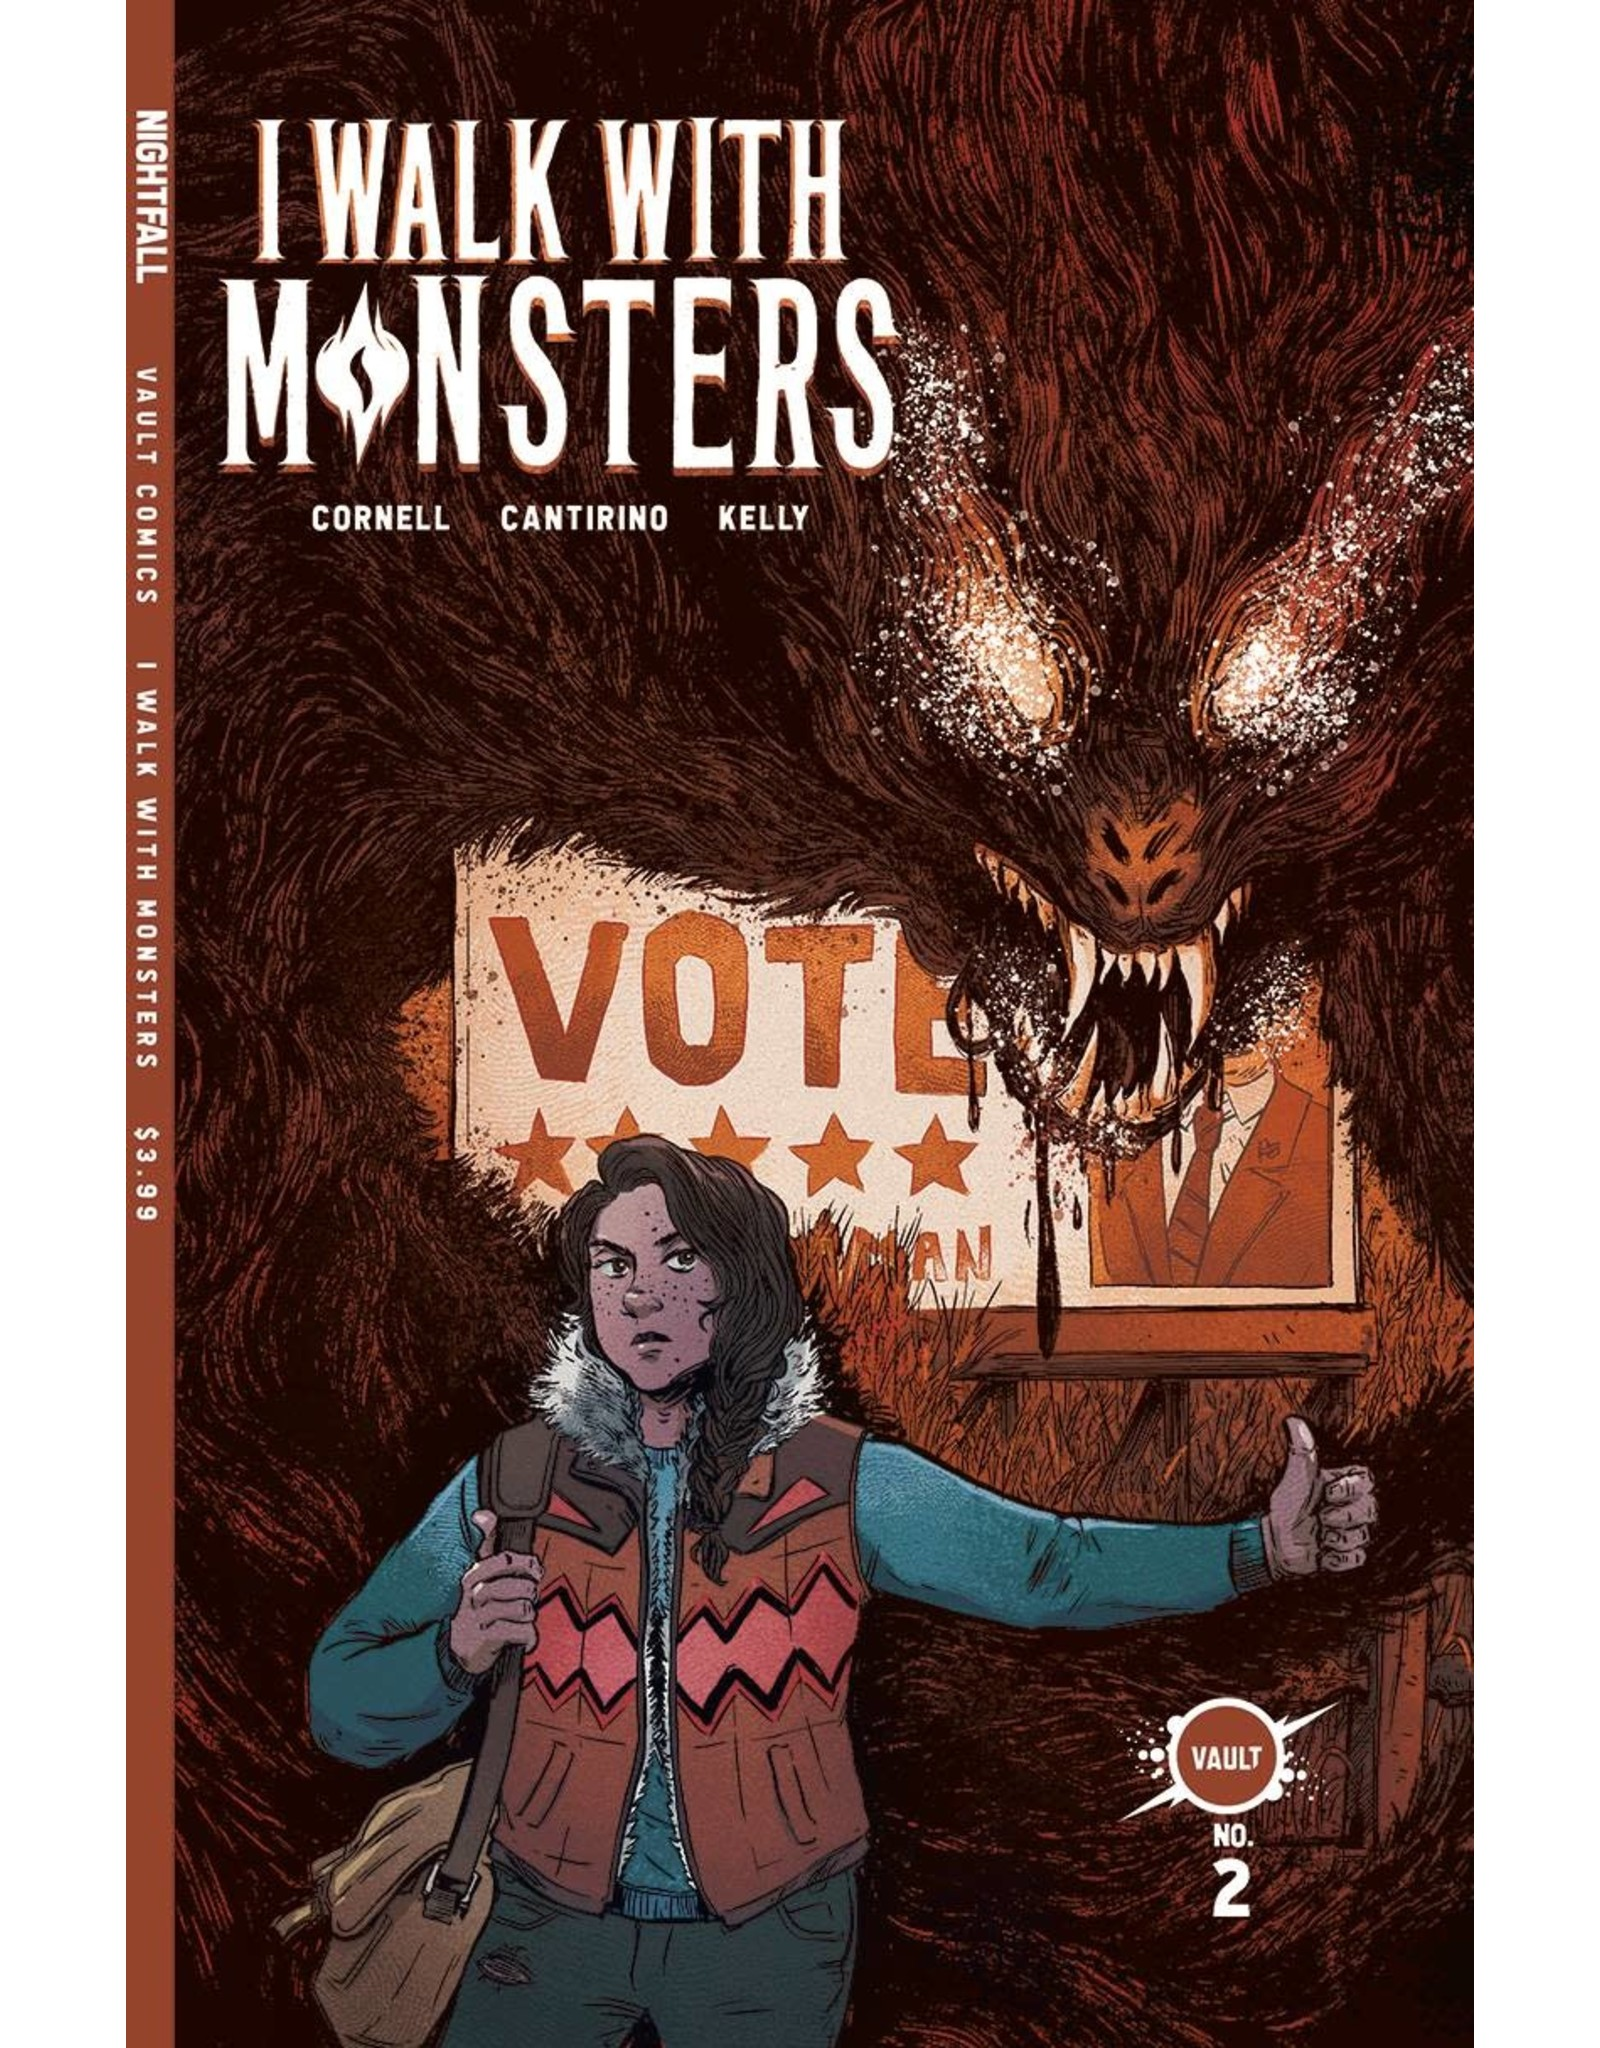 VAULT COMICS I WALK WITH MONSTERS #2 CVR A CANTIRINO